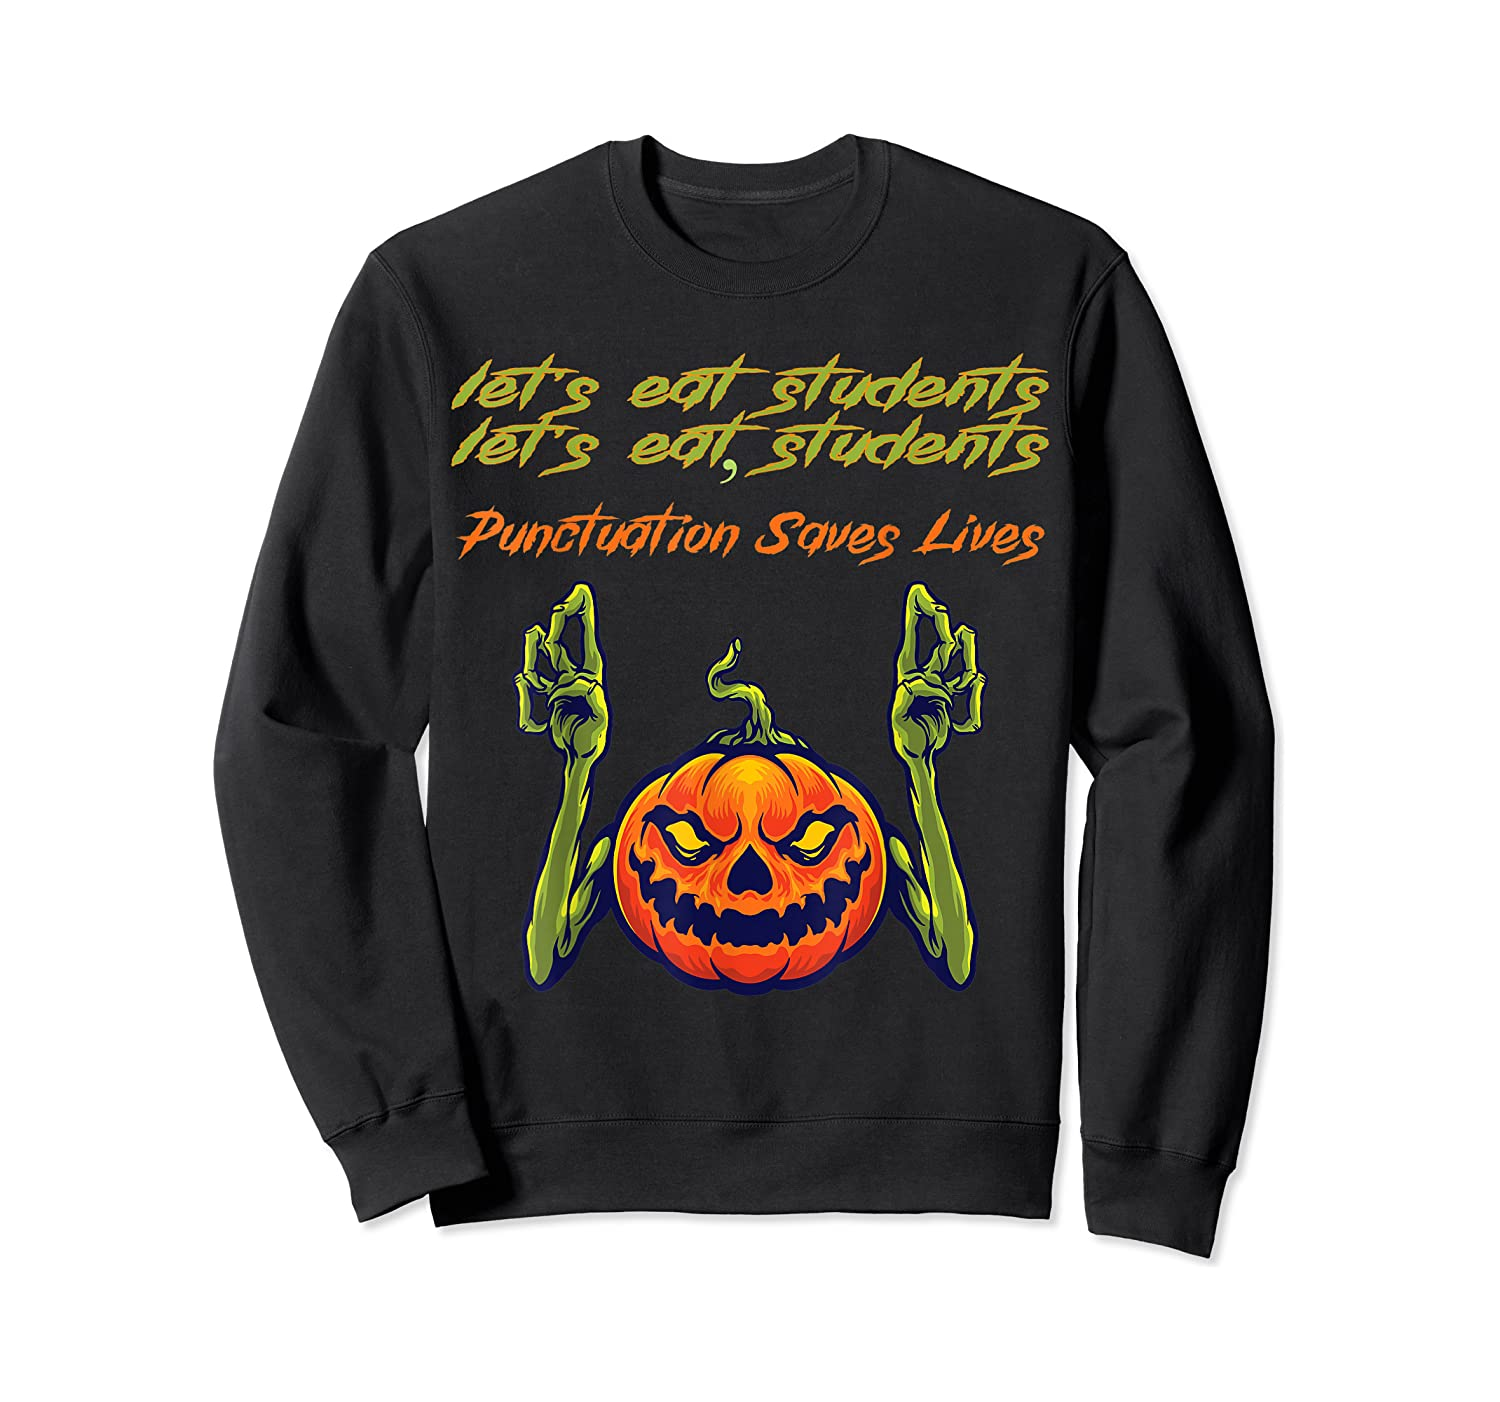 Funny Let's Eat Students Punctuation Saves Lives Tea Shirts Crewneck Sweater